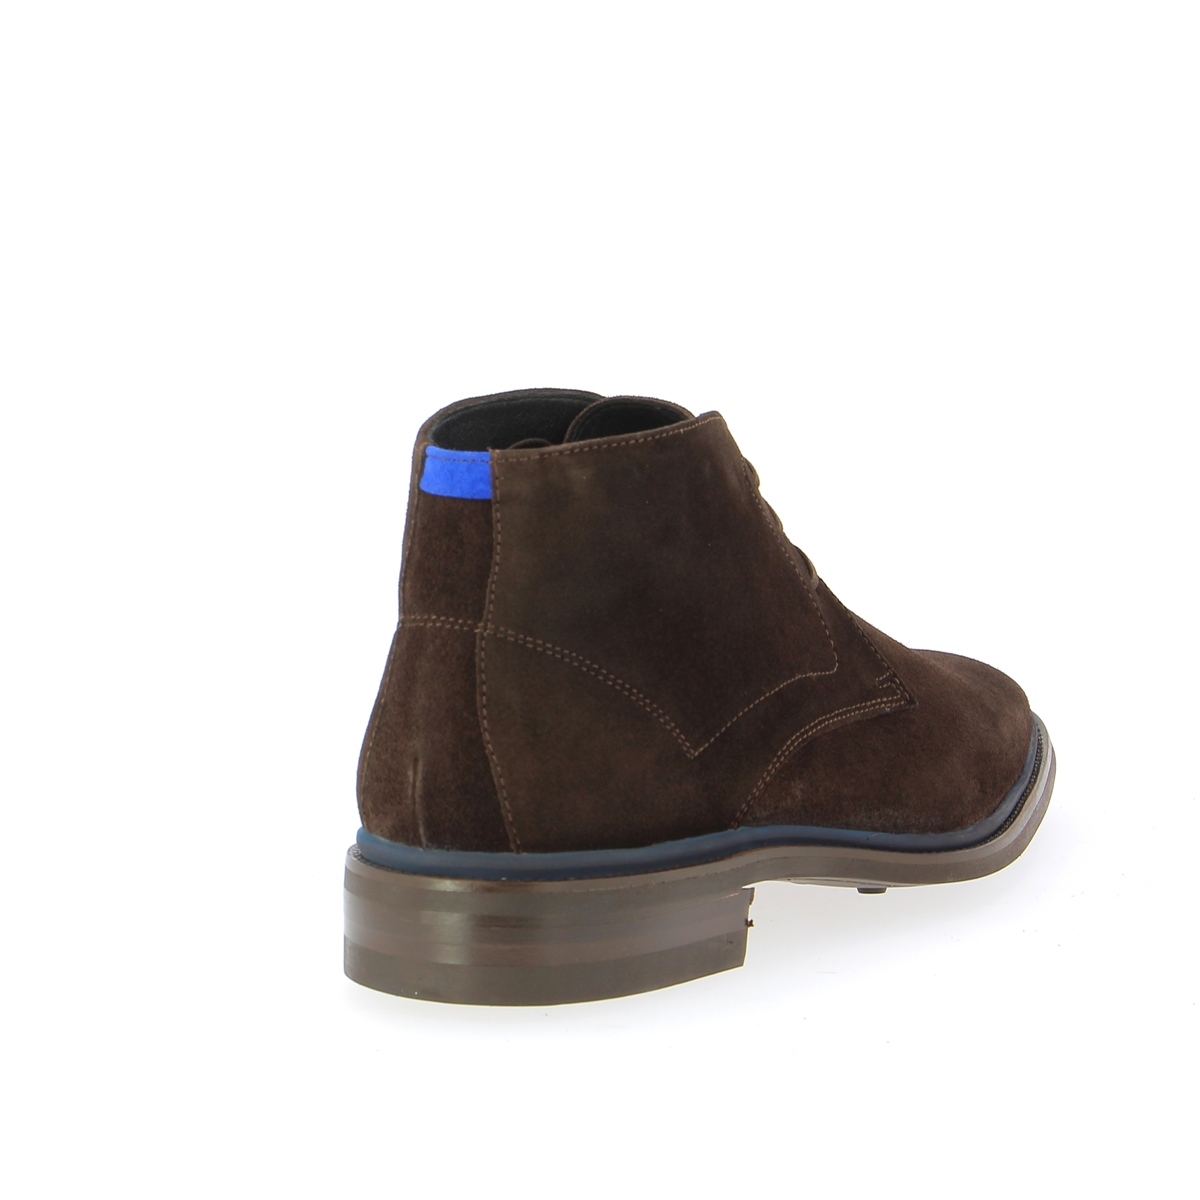 Floris Van Bommel Bottines brun